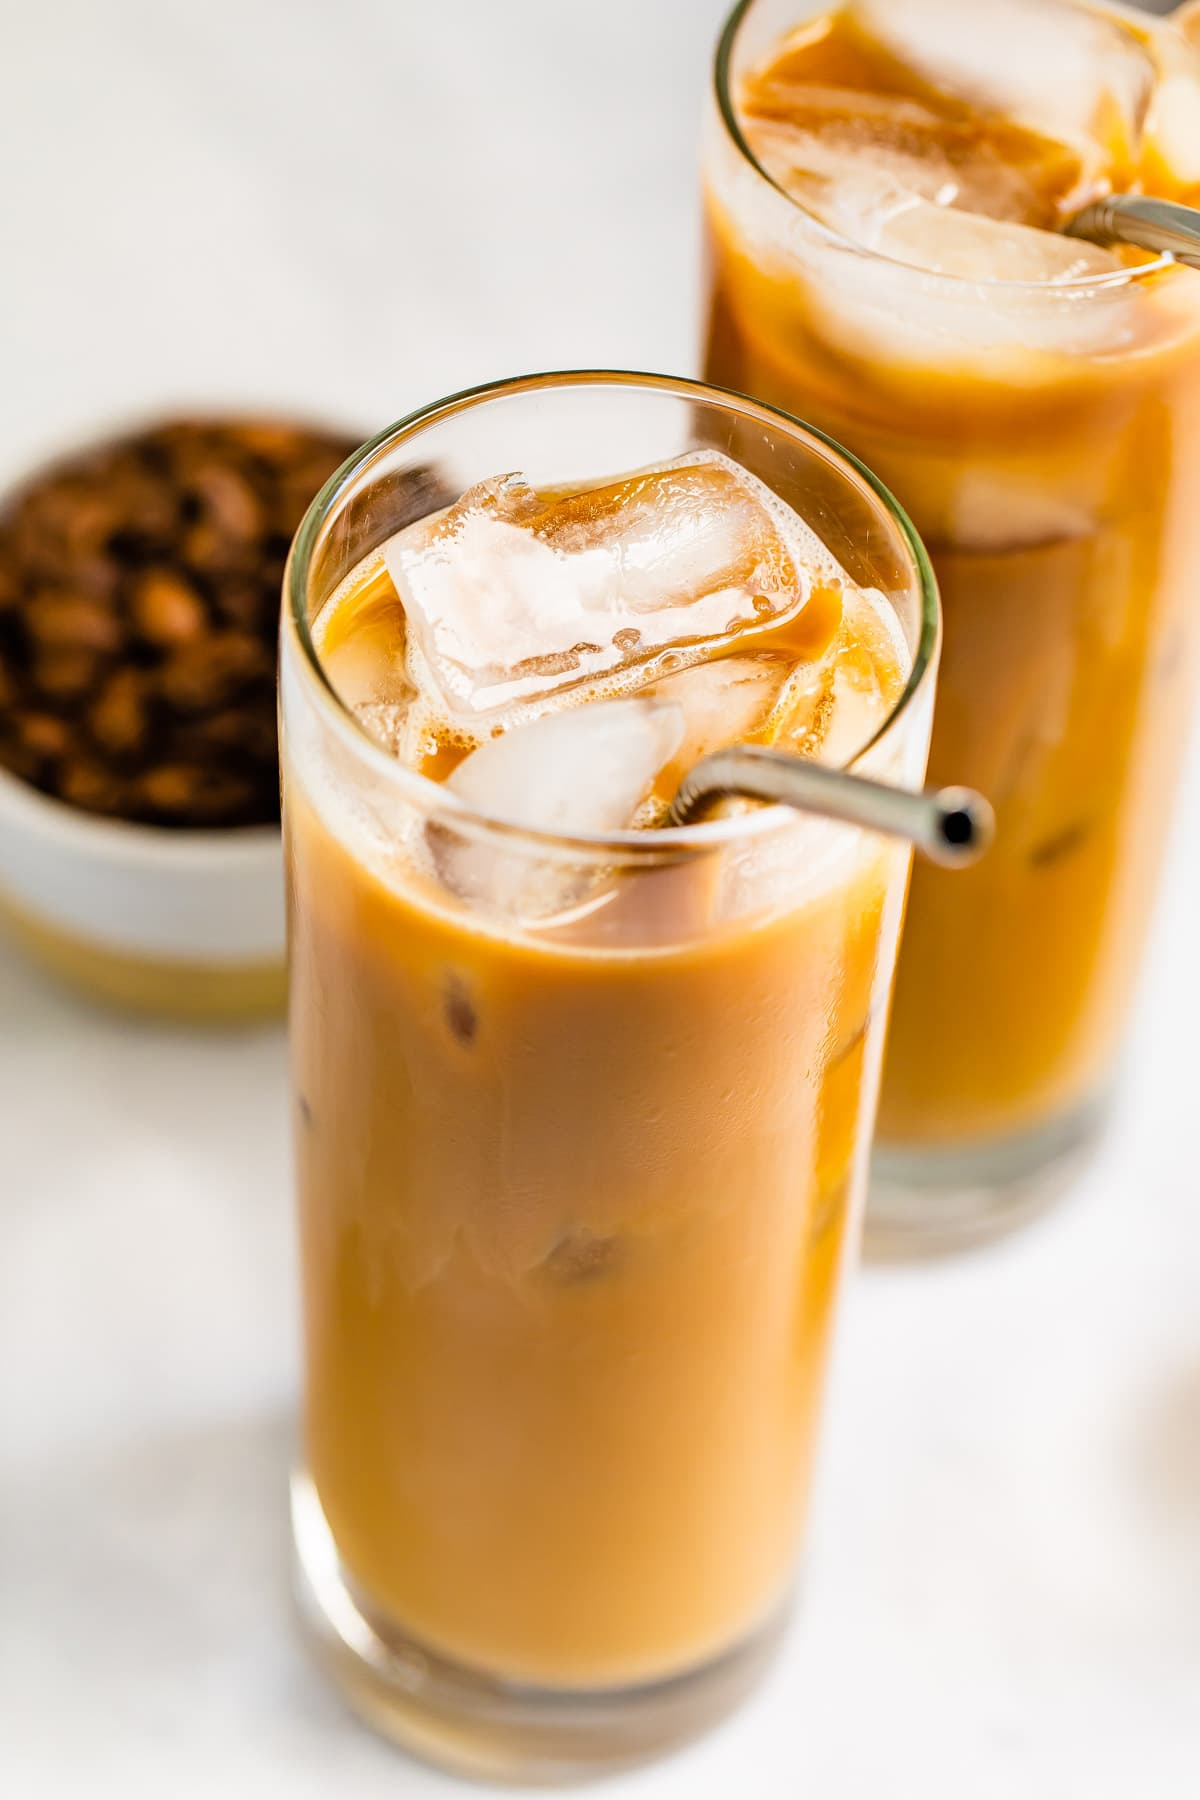 Glass of cold brew and cream with a metal straw in the glass.